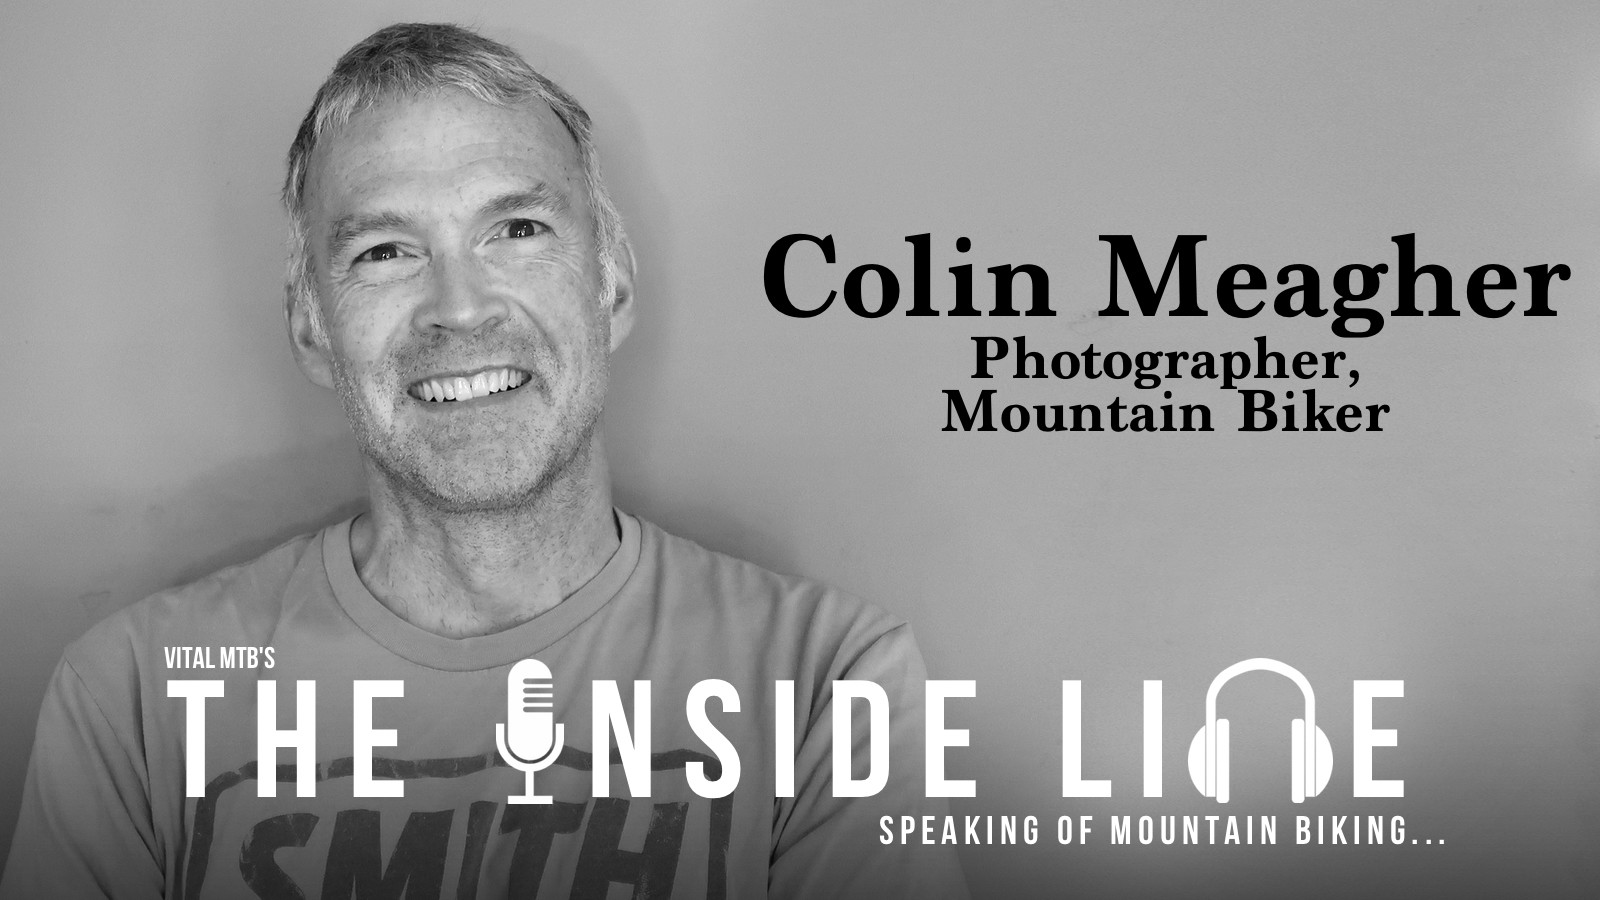 Battling Lou Gehrig's Disease - MTB Photographer, Colin Meagher